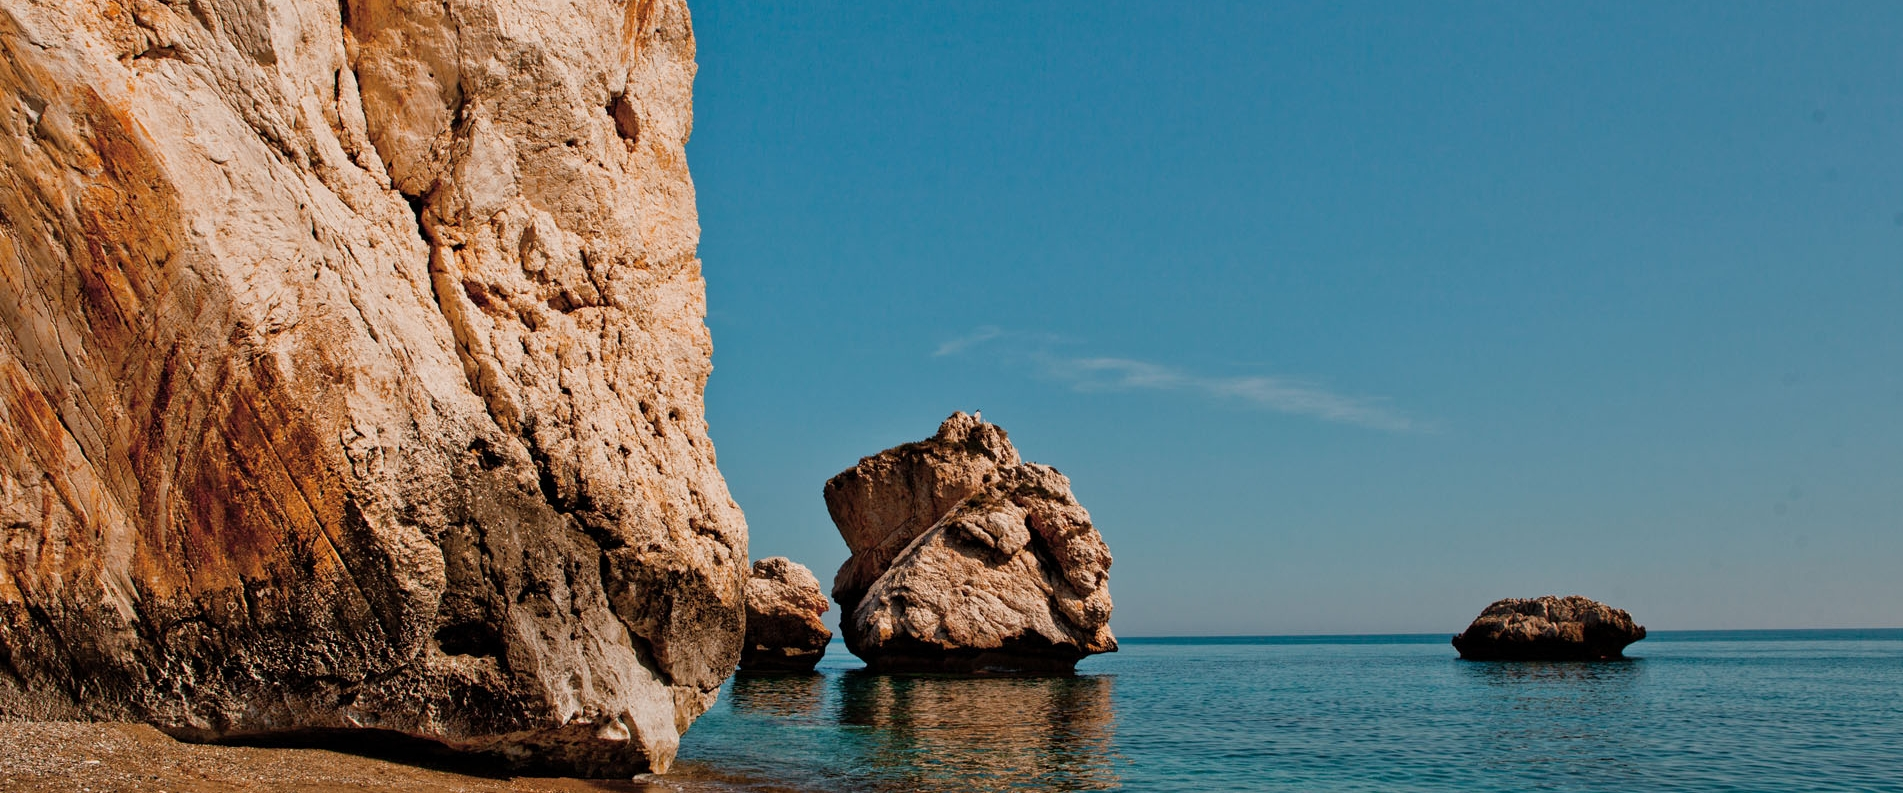 Petra tou Romiou: a scenic beach located between Limassol and Paphos